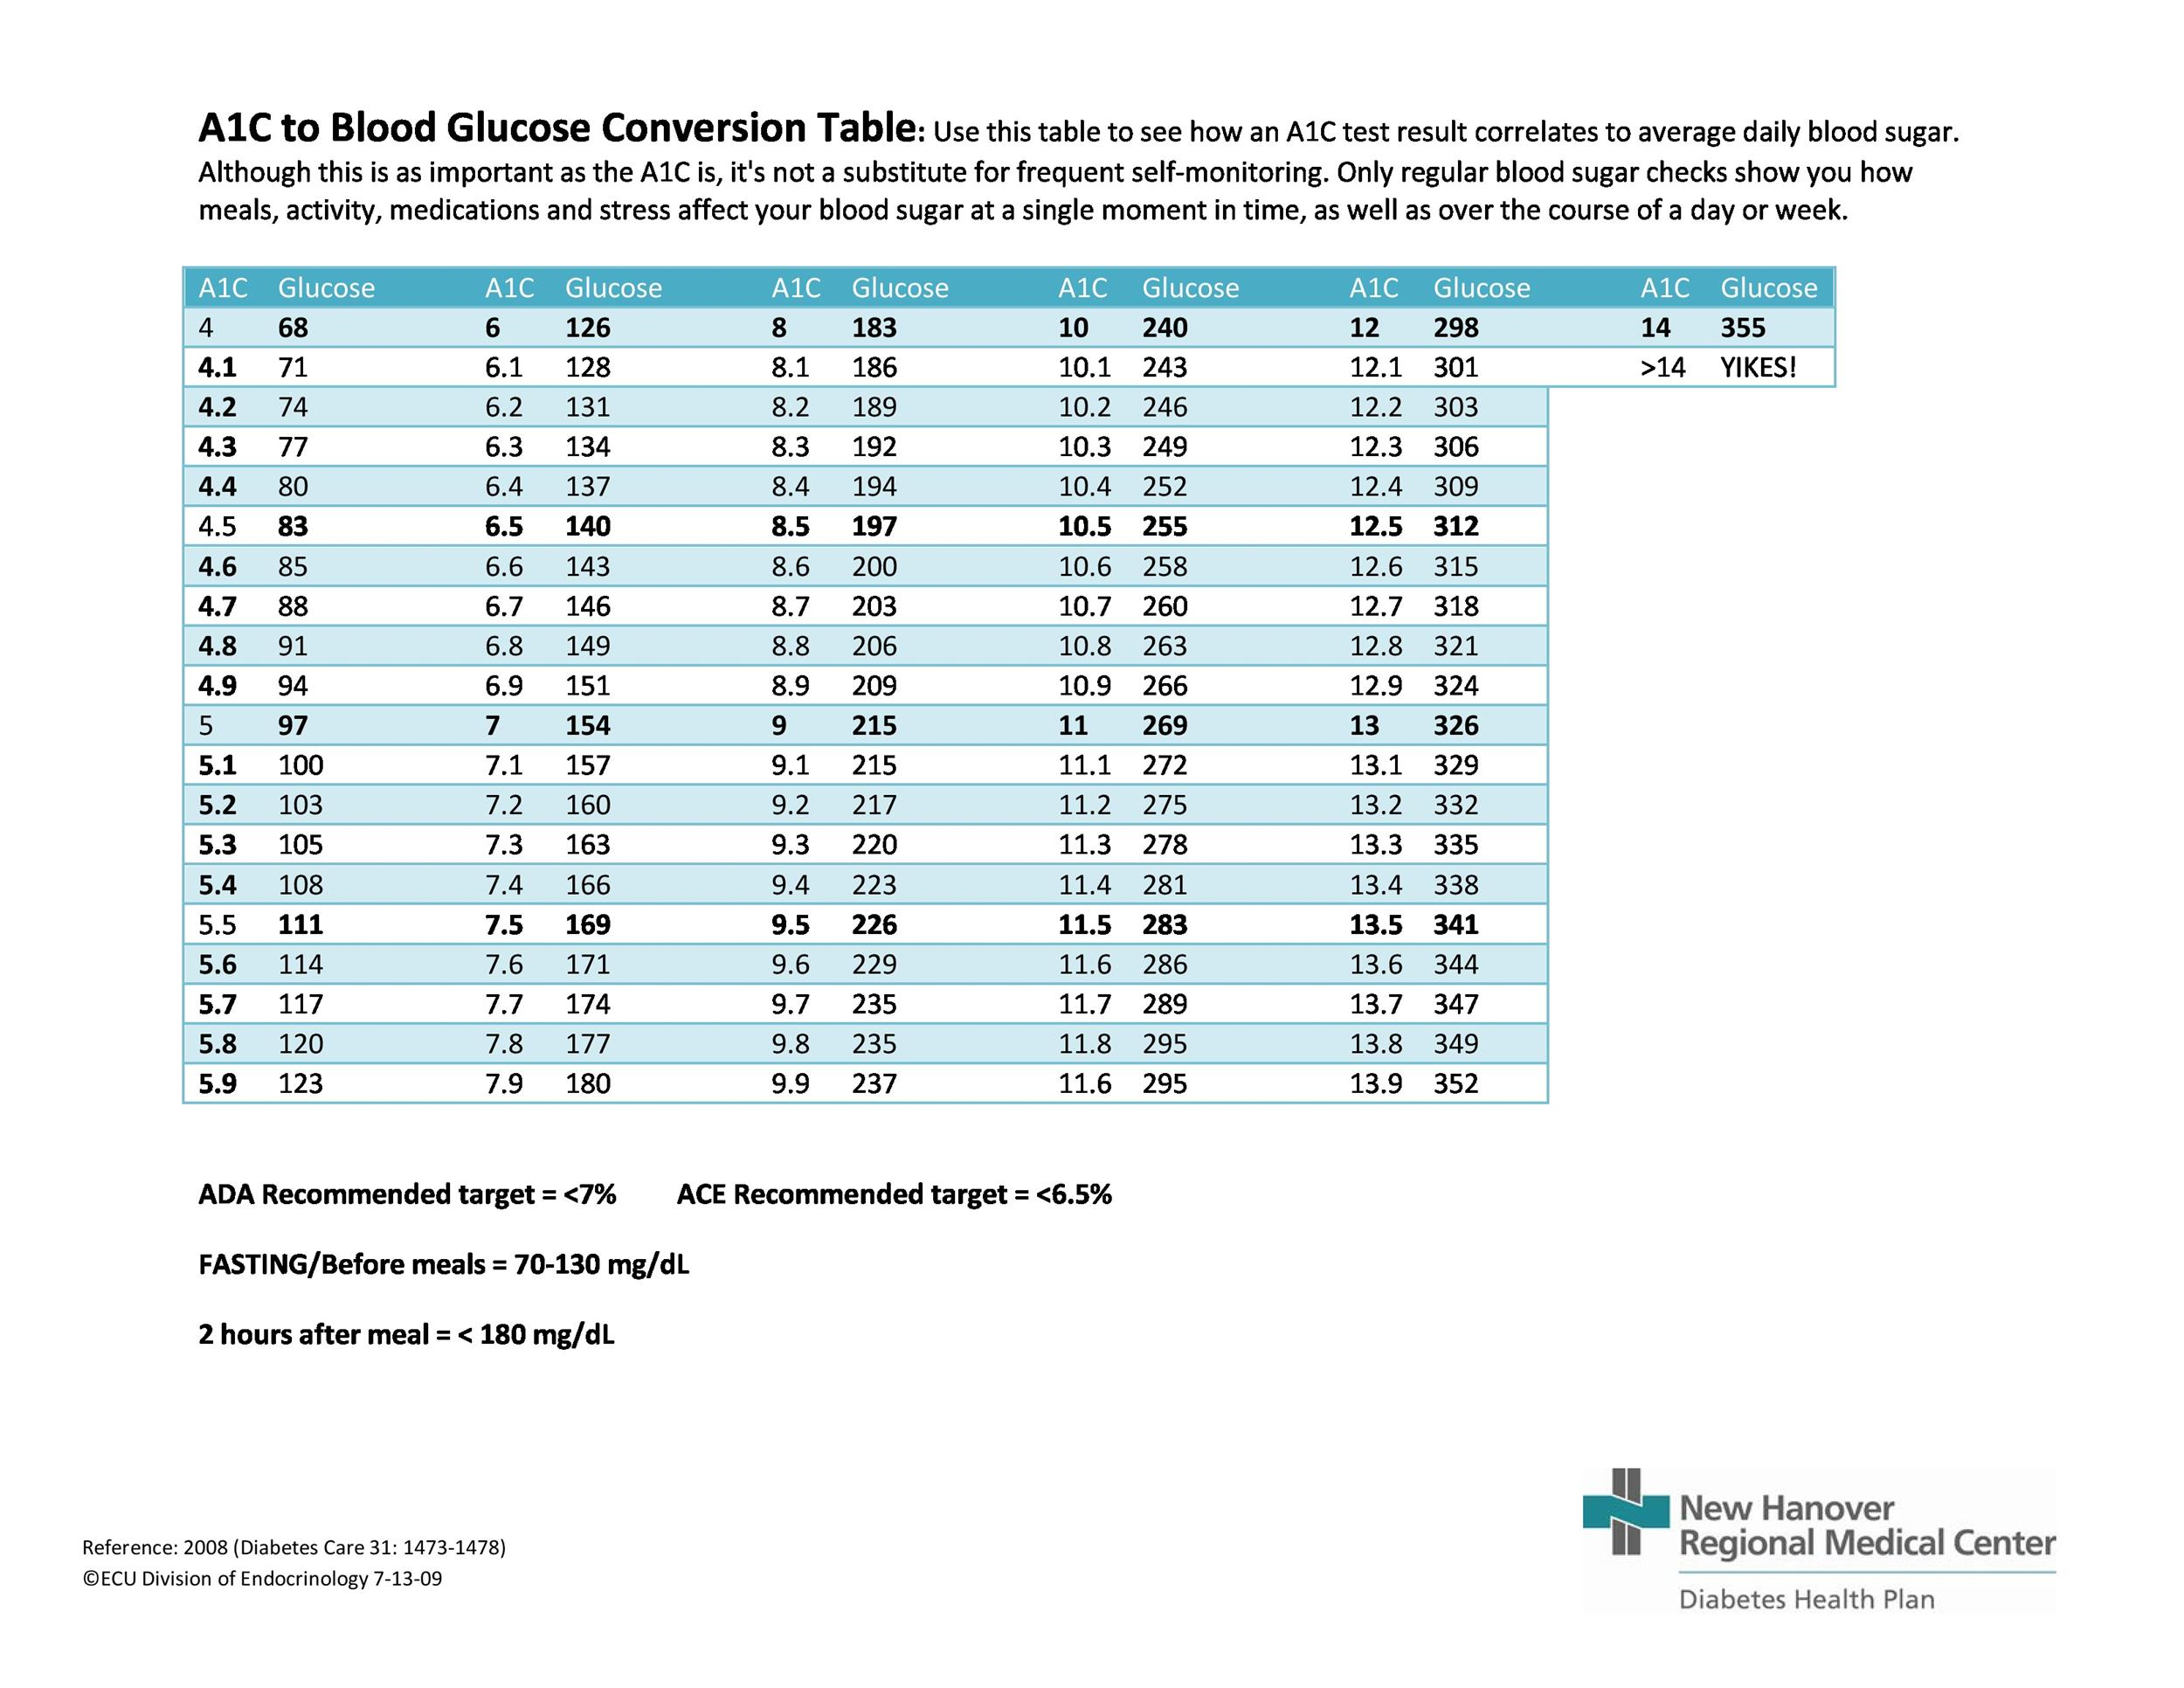 25 Printable Blood Sugar Charts Normal, High, Low - Template Lab - blood sugar levels chart printable